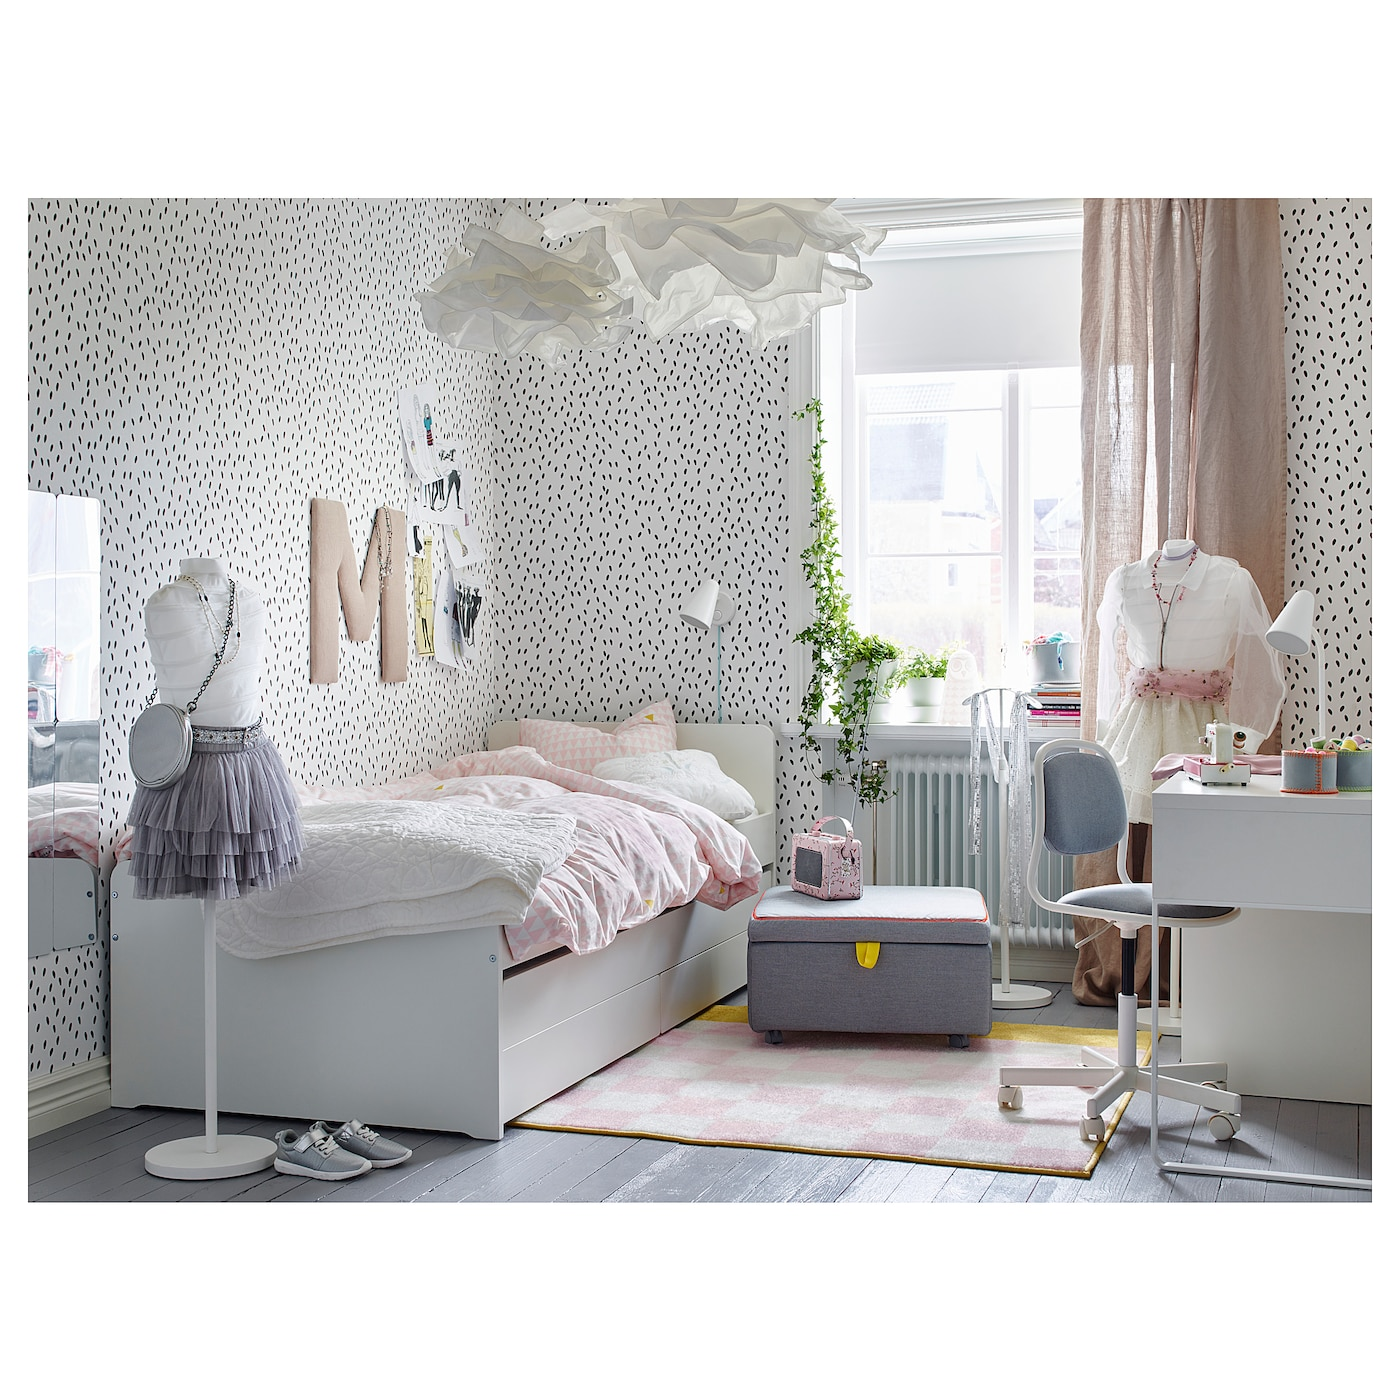 """SL""""KT Bed frame with underbed and storage White 90x200 cm IKEA"""